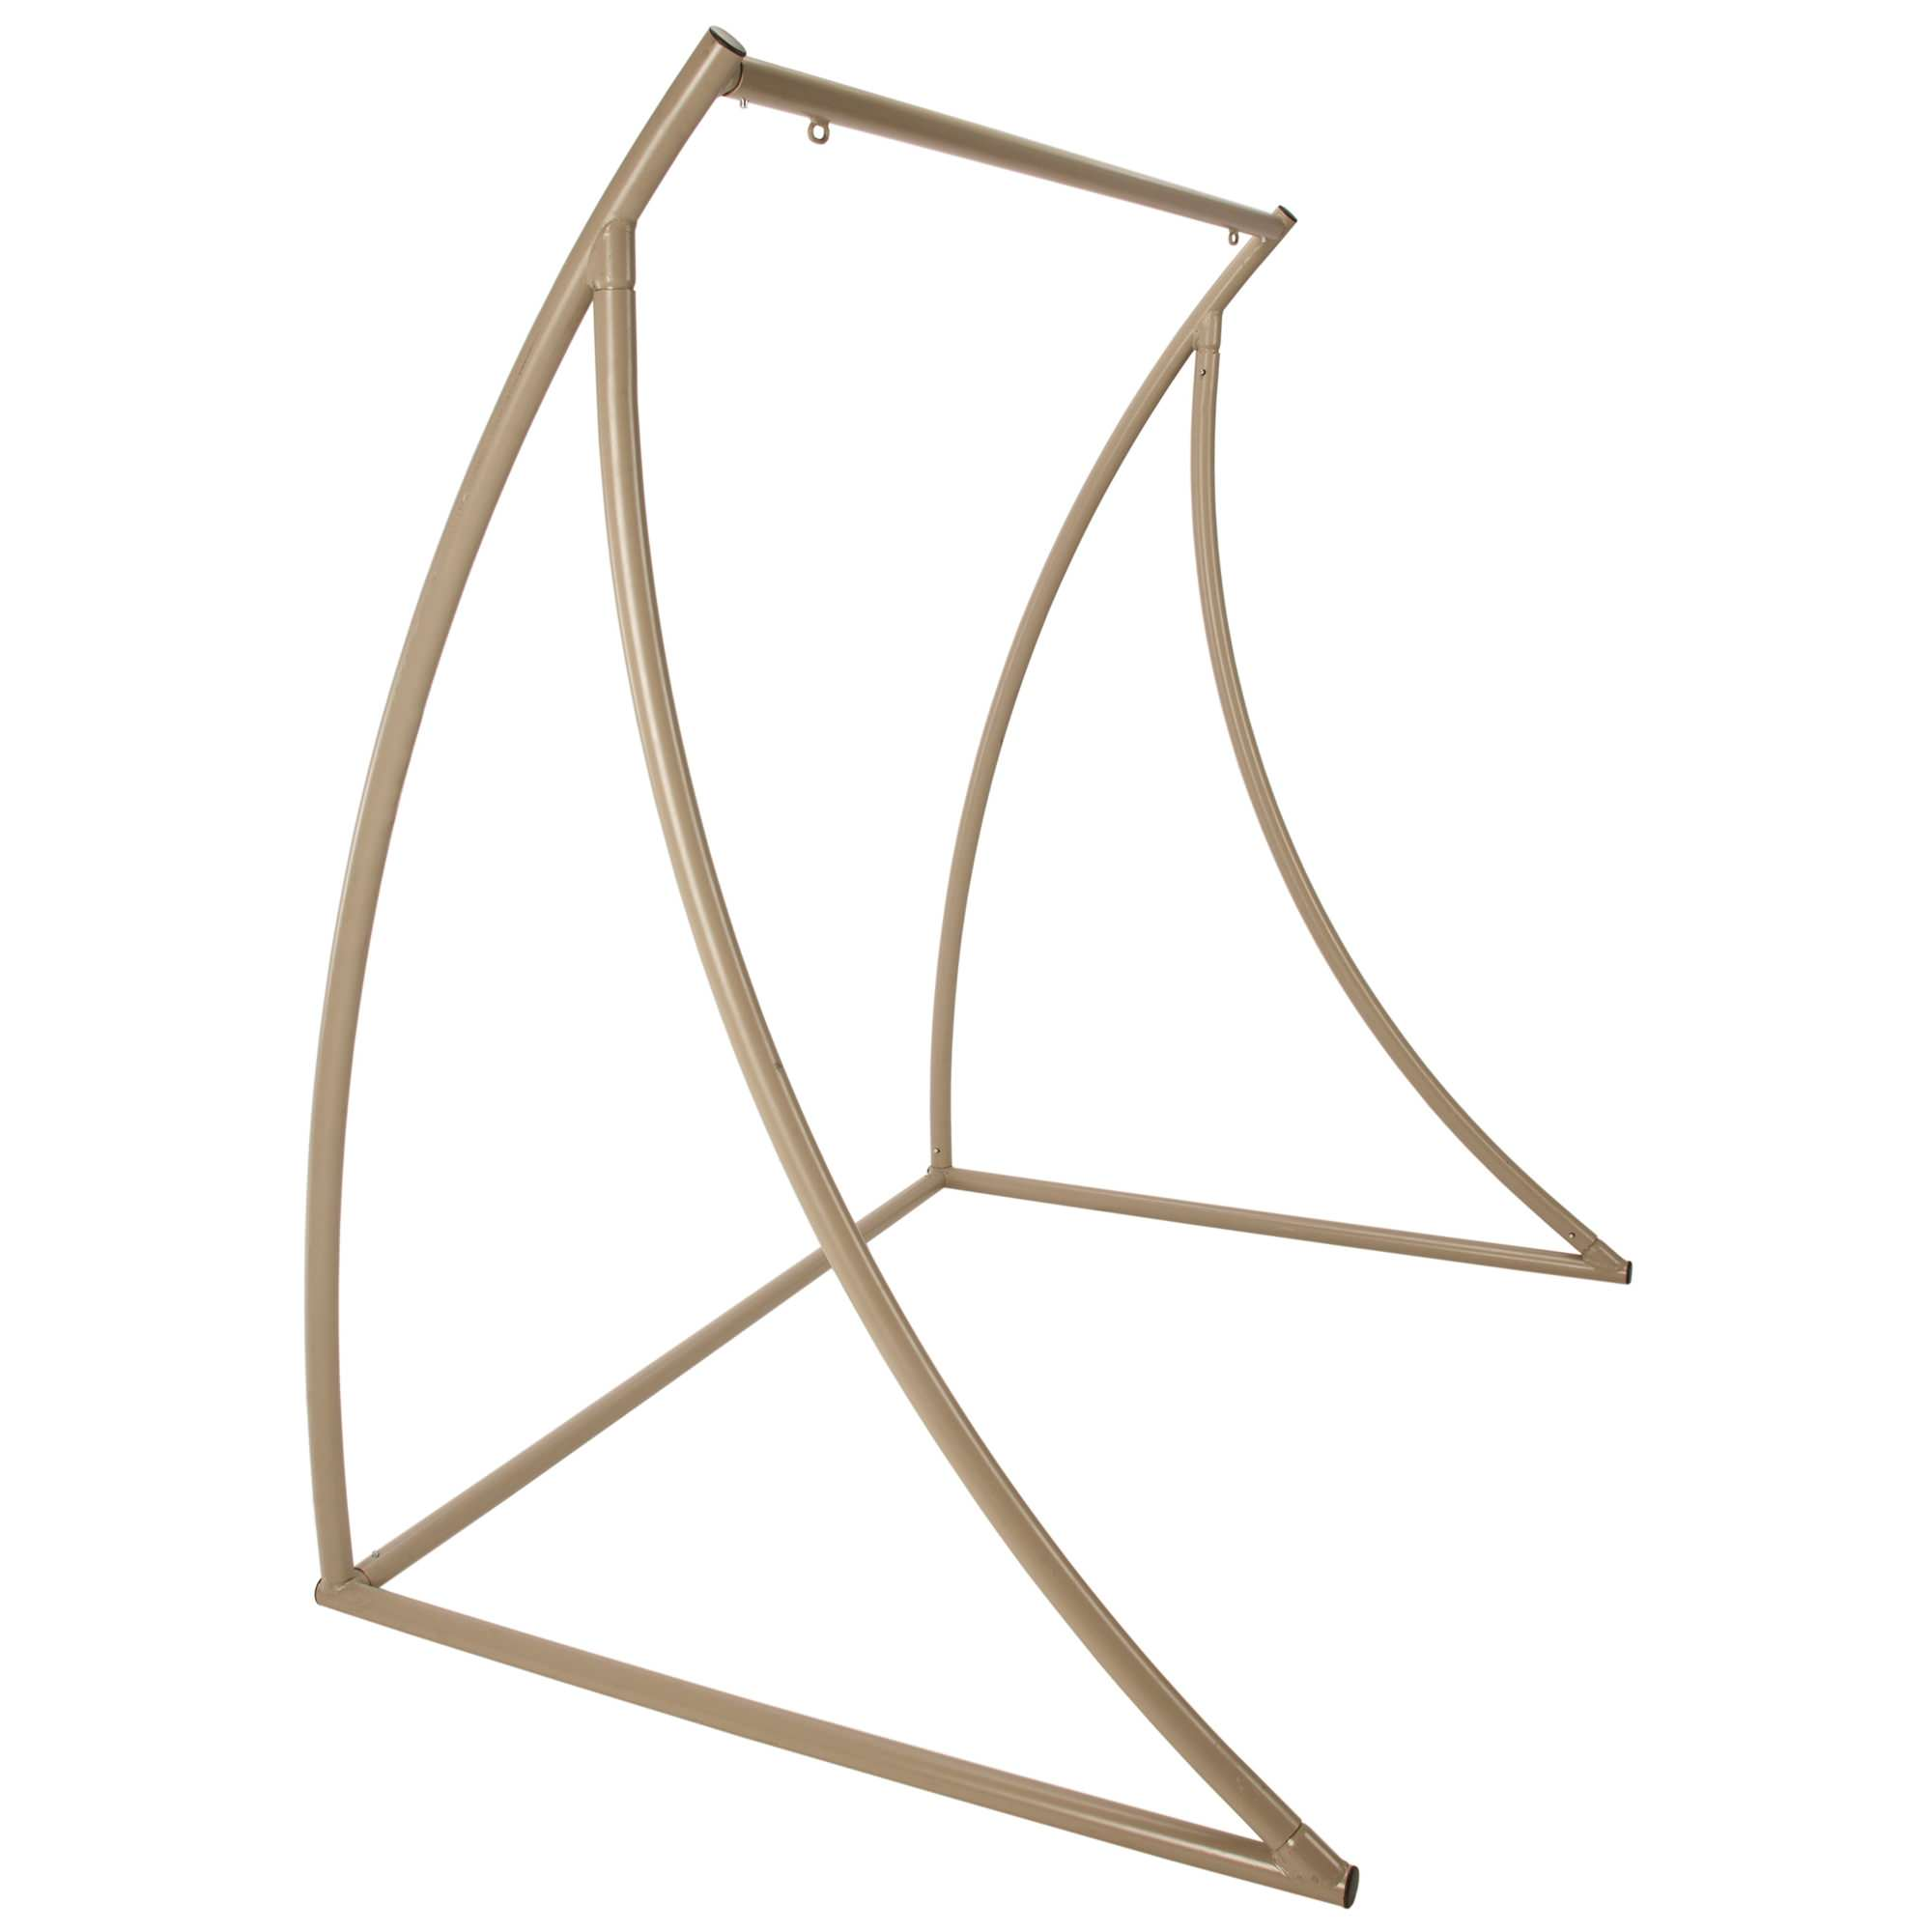 Curved Taupe Metal Double Swing Stand on Sale | SWSC2T | DFOHome